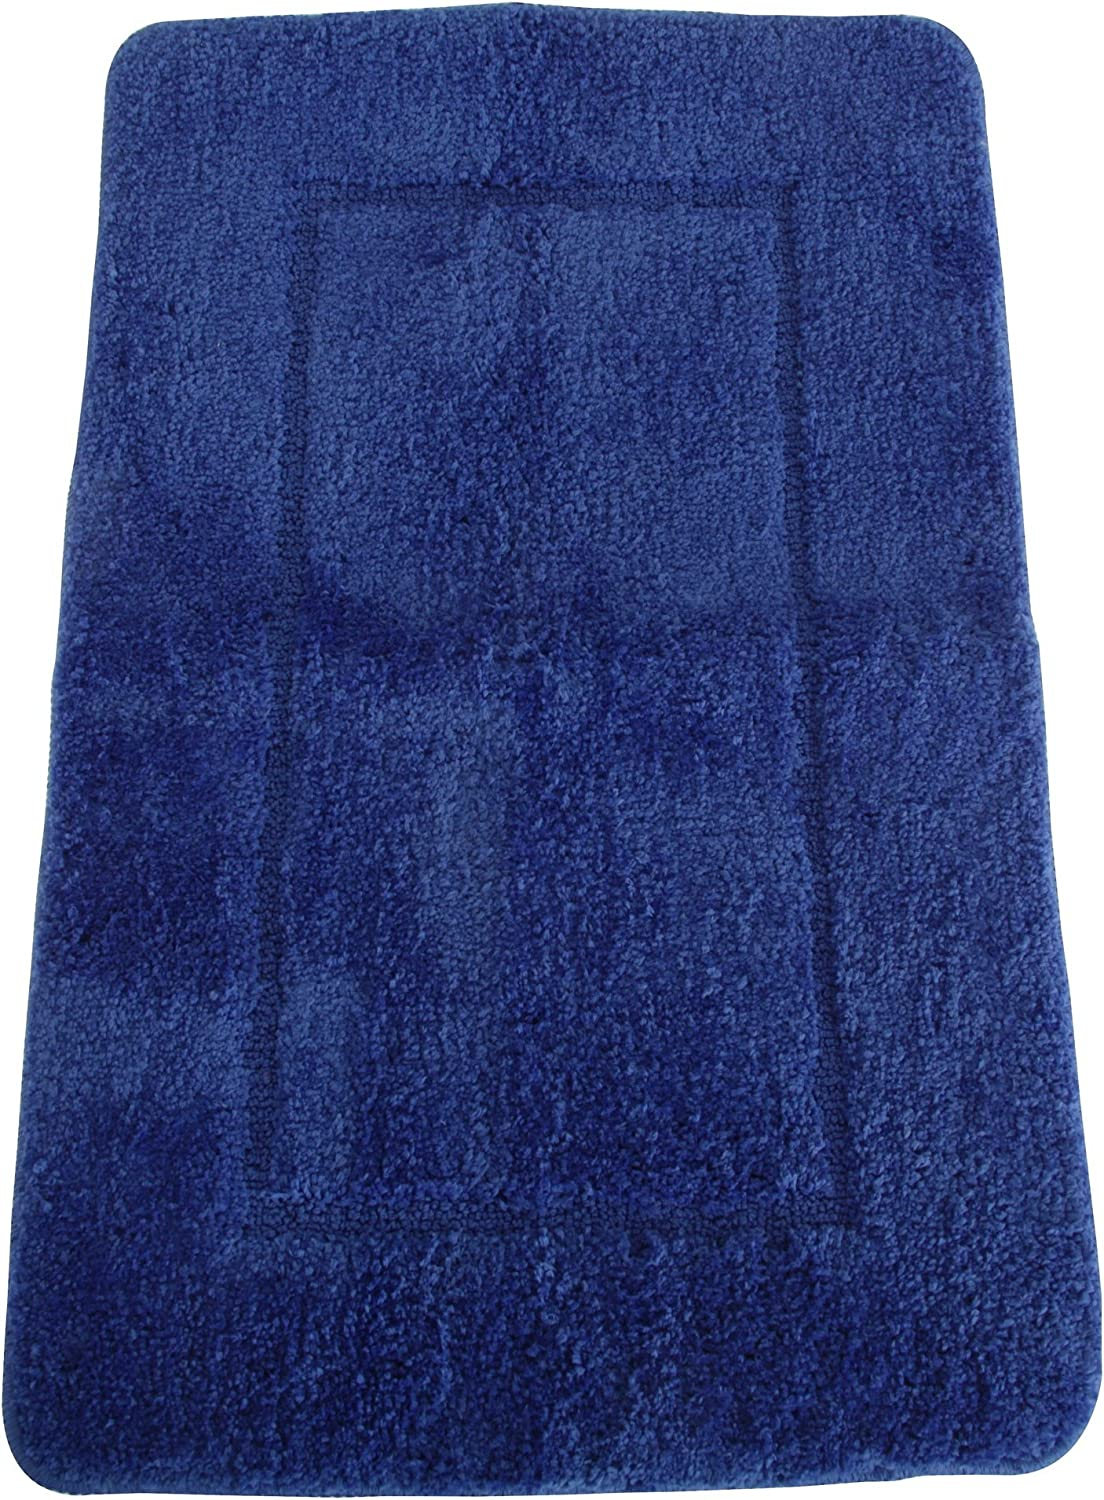 Mayfair Cashmere Great interest Touch Ultimate Microfiber x Mat Super Special SALE held 19.6 Bath 31.4